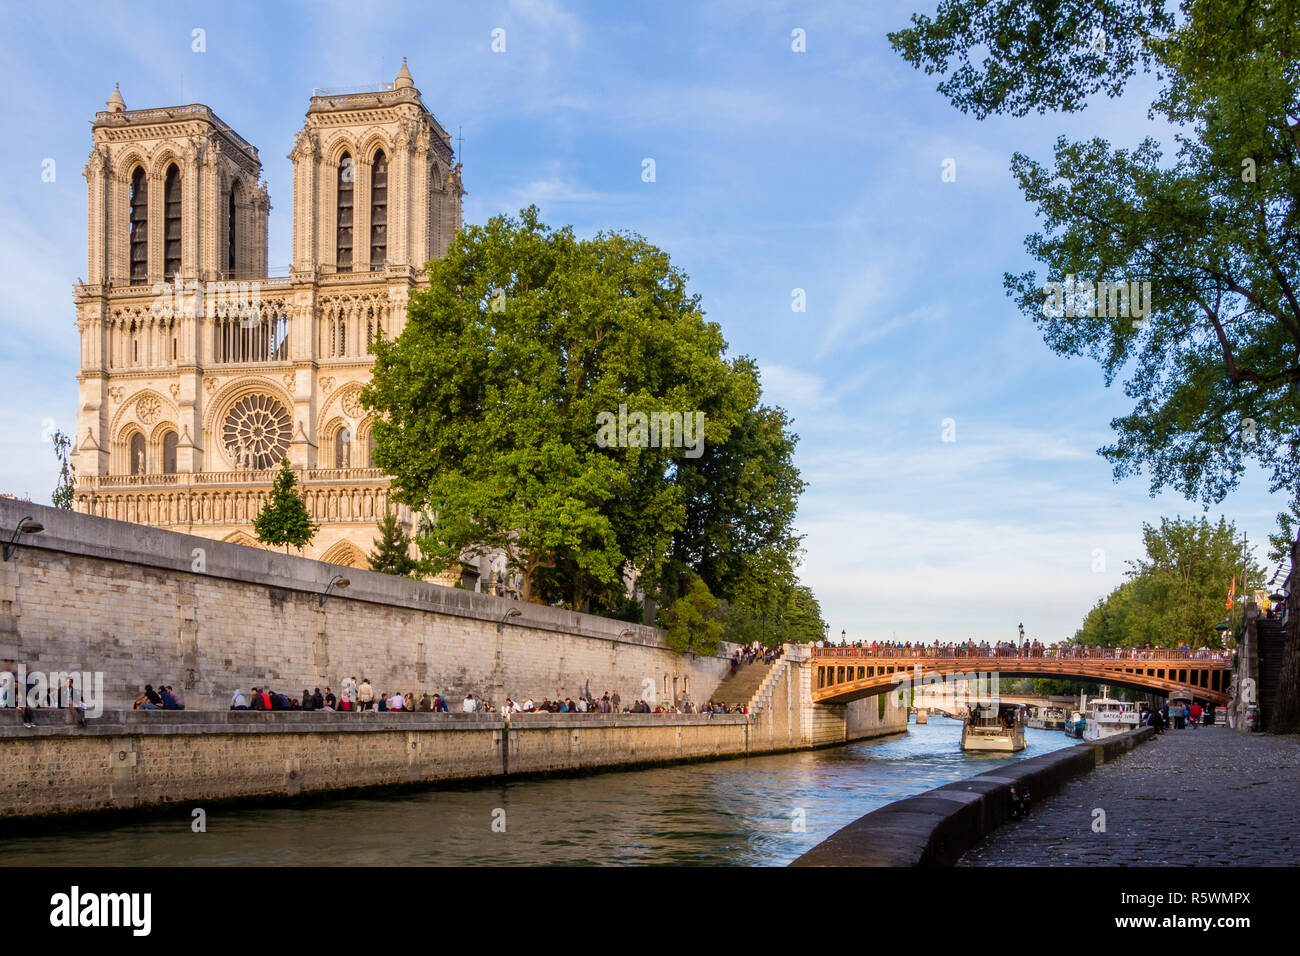 People relaxing on the Seine River with the Cathedral of Notre Dame in the background - Stock Image